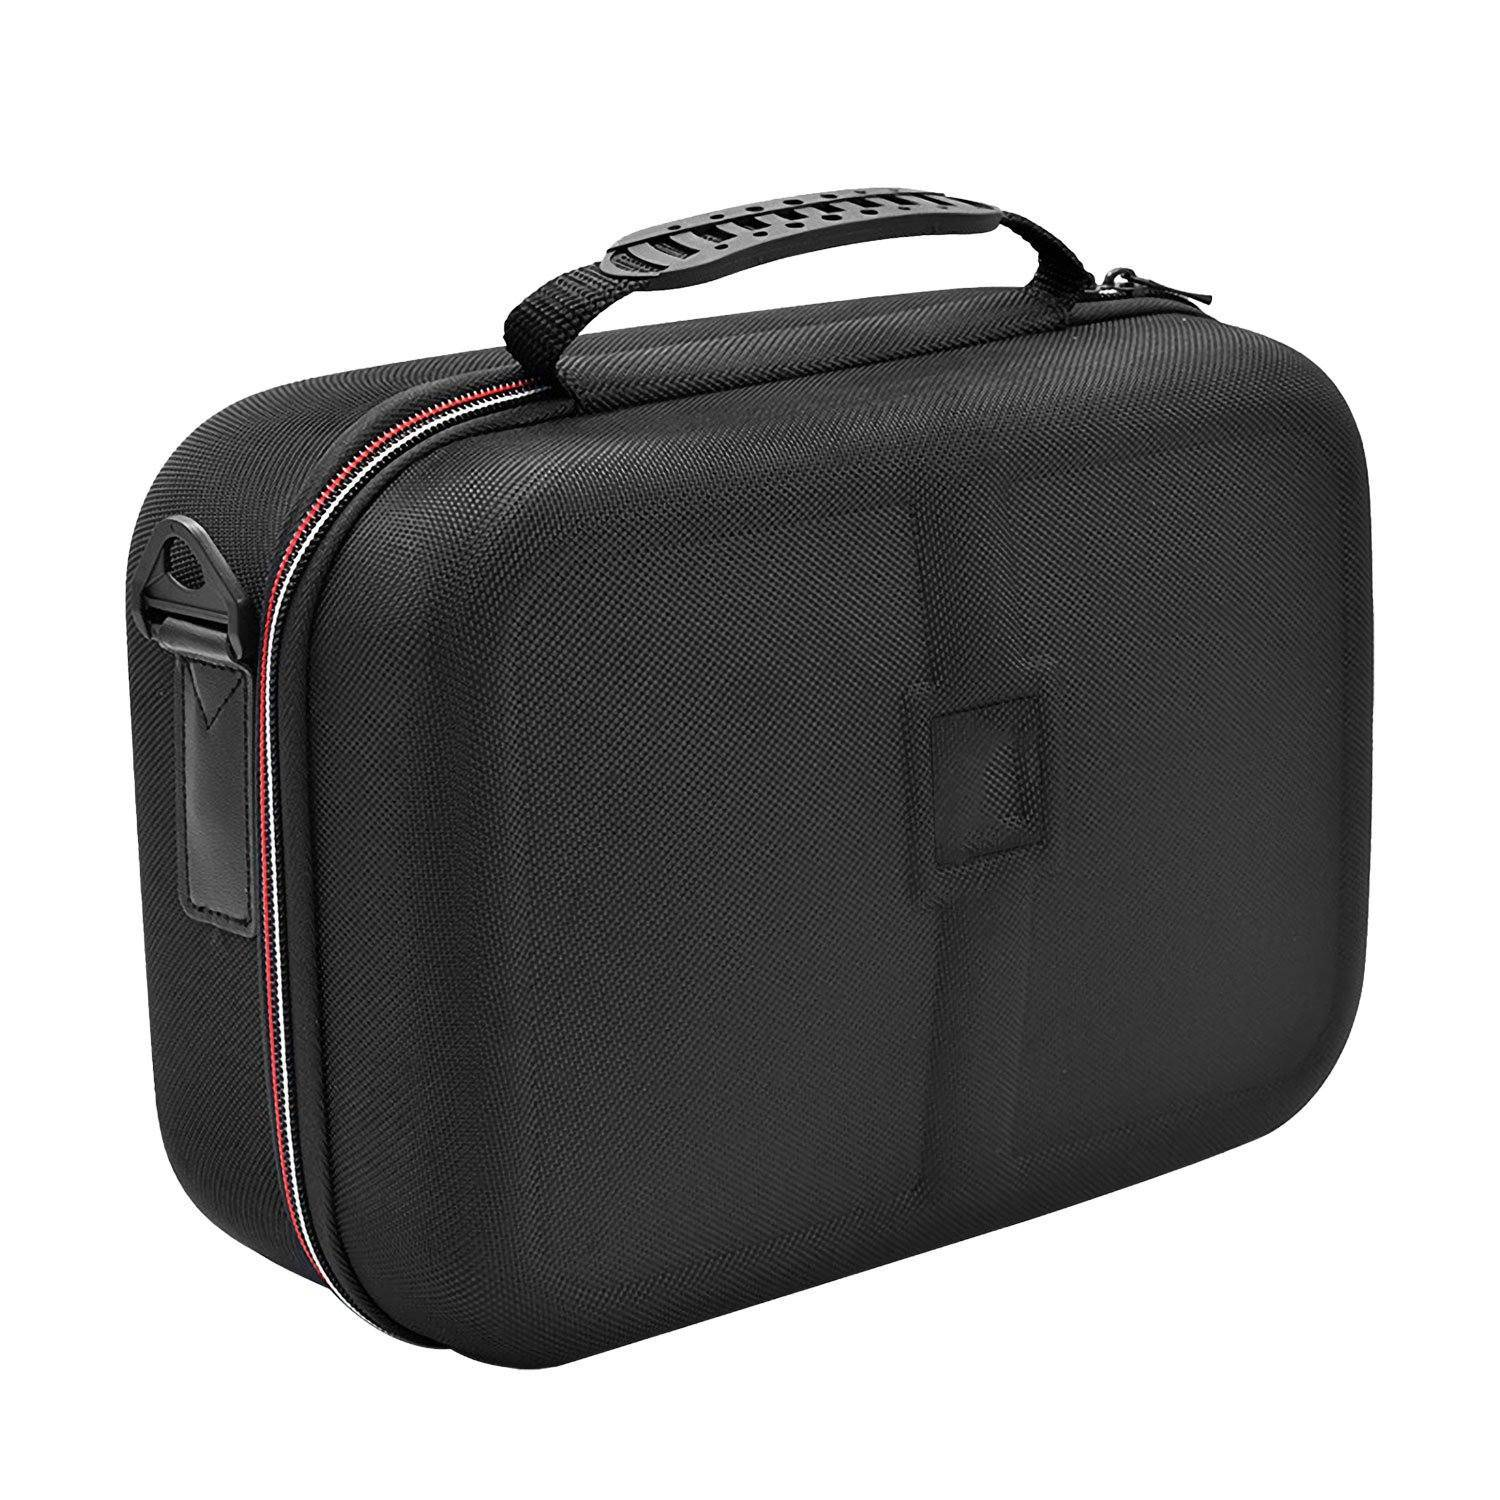 Portable Deluxe Carrying Case for Nintendo Switch